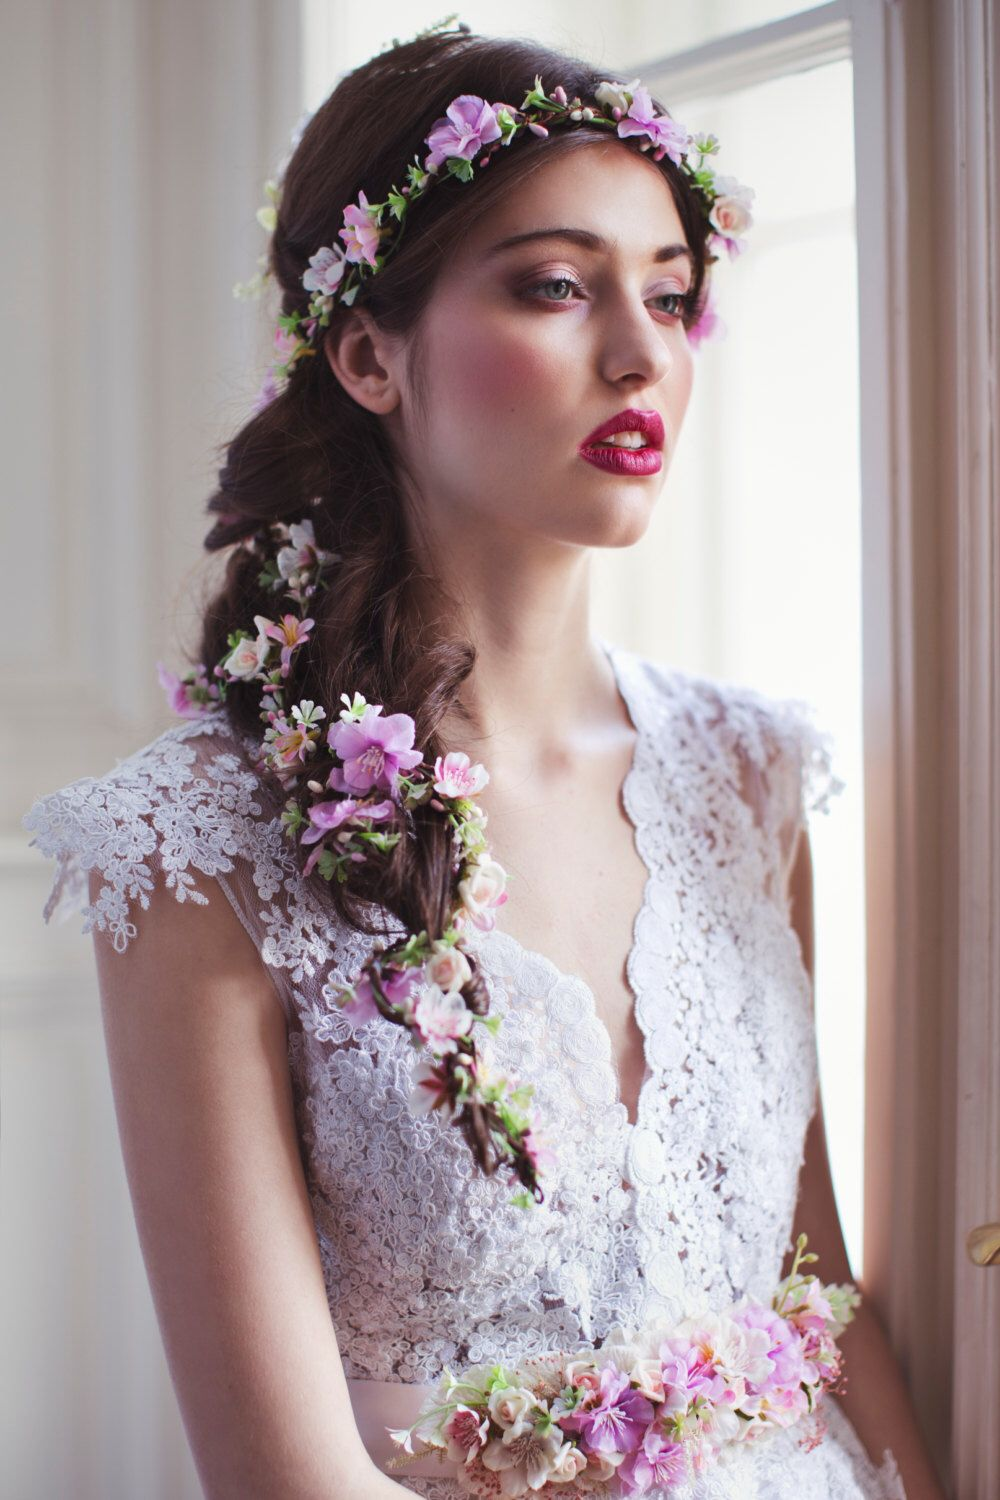 Pin By Tiffiny On Weddings Pinterest Flower Head Wreaths Floral